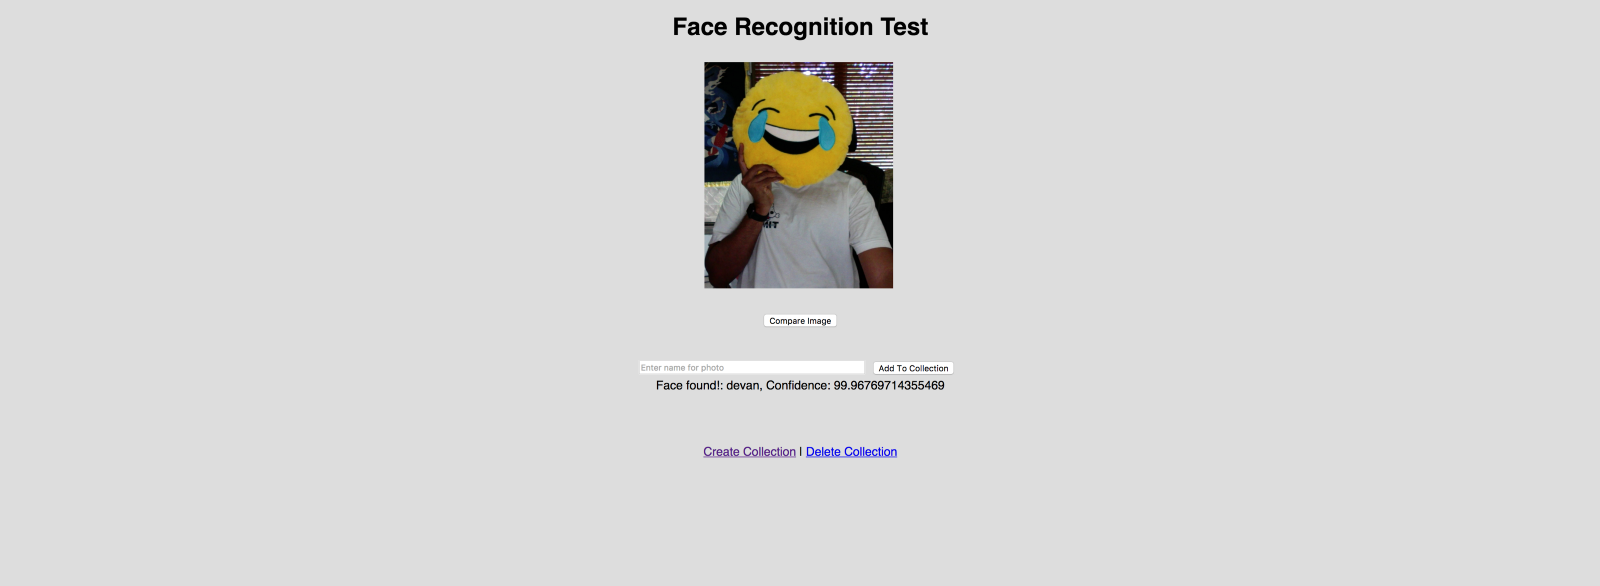 Building a face recognition web app in under an hour - By